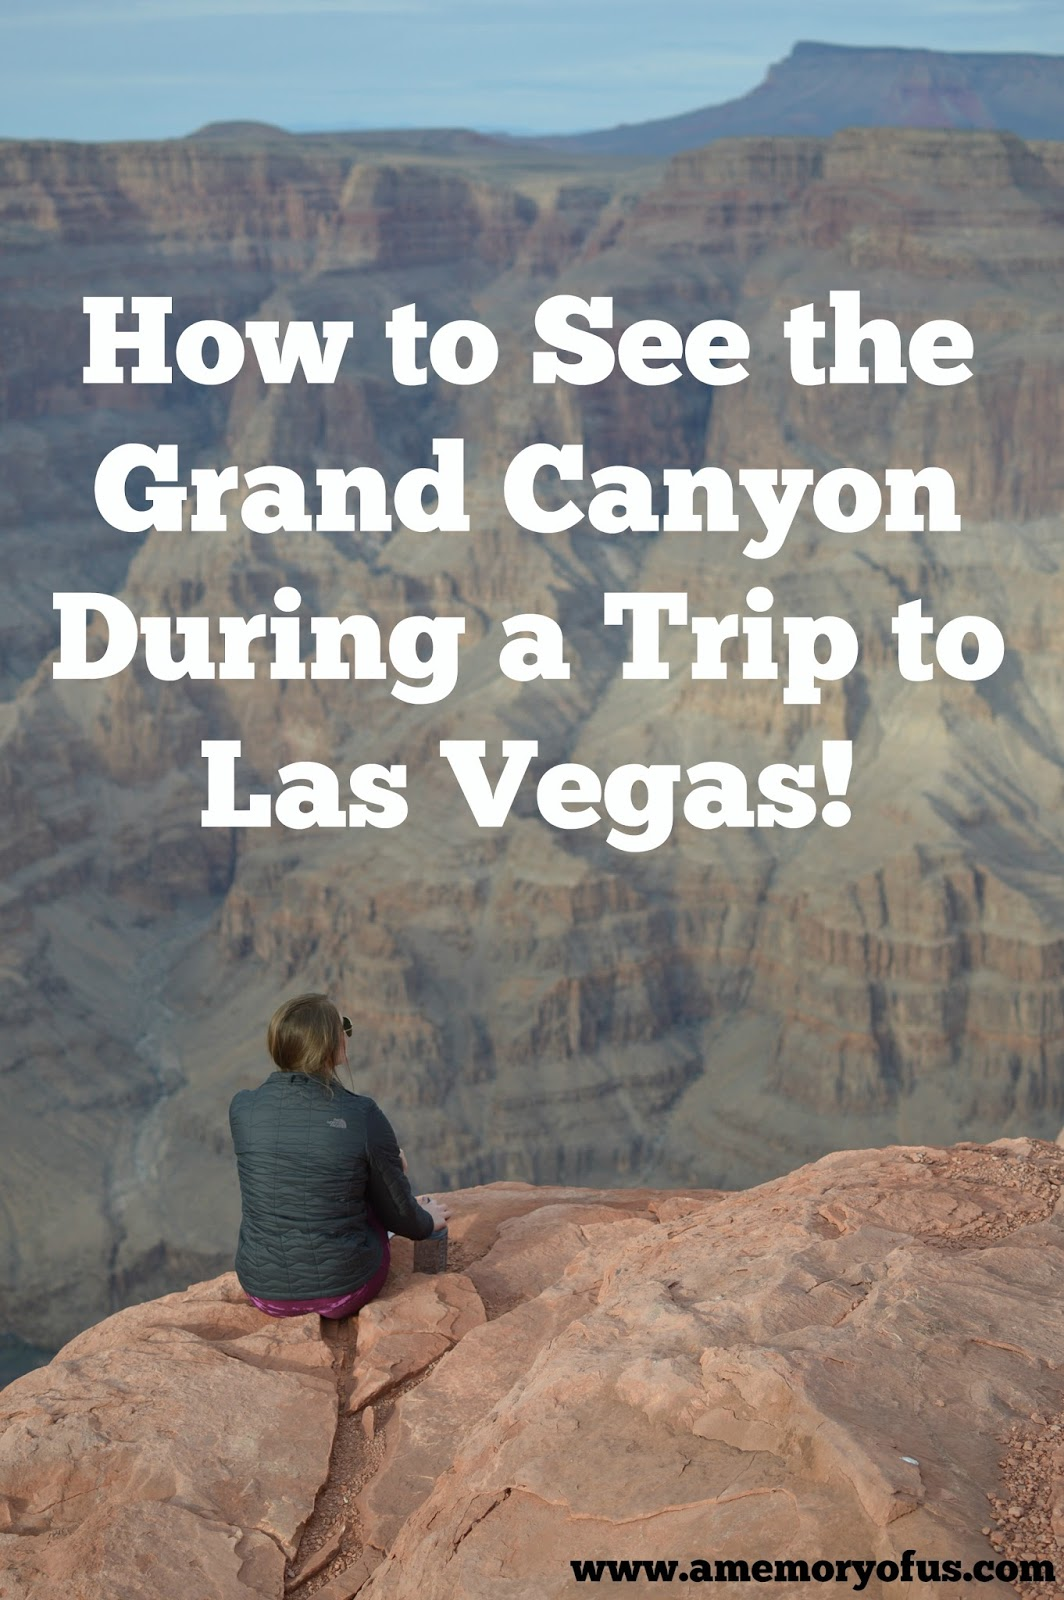 how to see the grand canyon on a trip to las vegas | visiting the grand canyon during a trip to las vegas | cheap ways to see the grand canyon | how far away is the grand canyon from las vegas | a memory of us